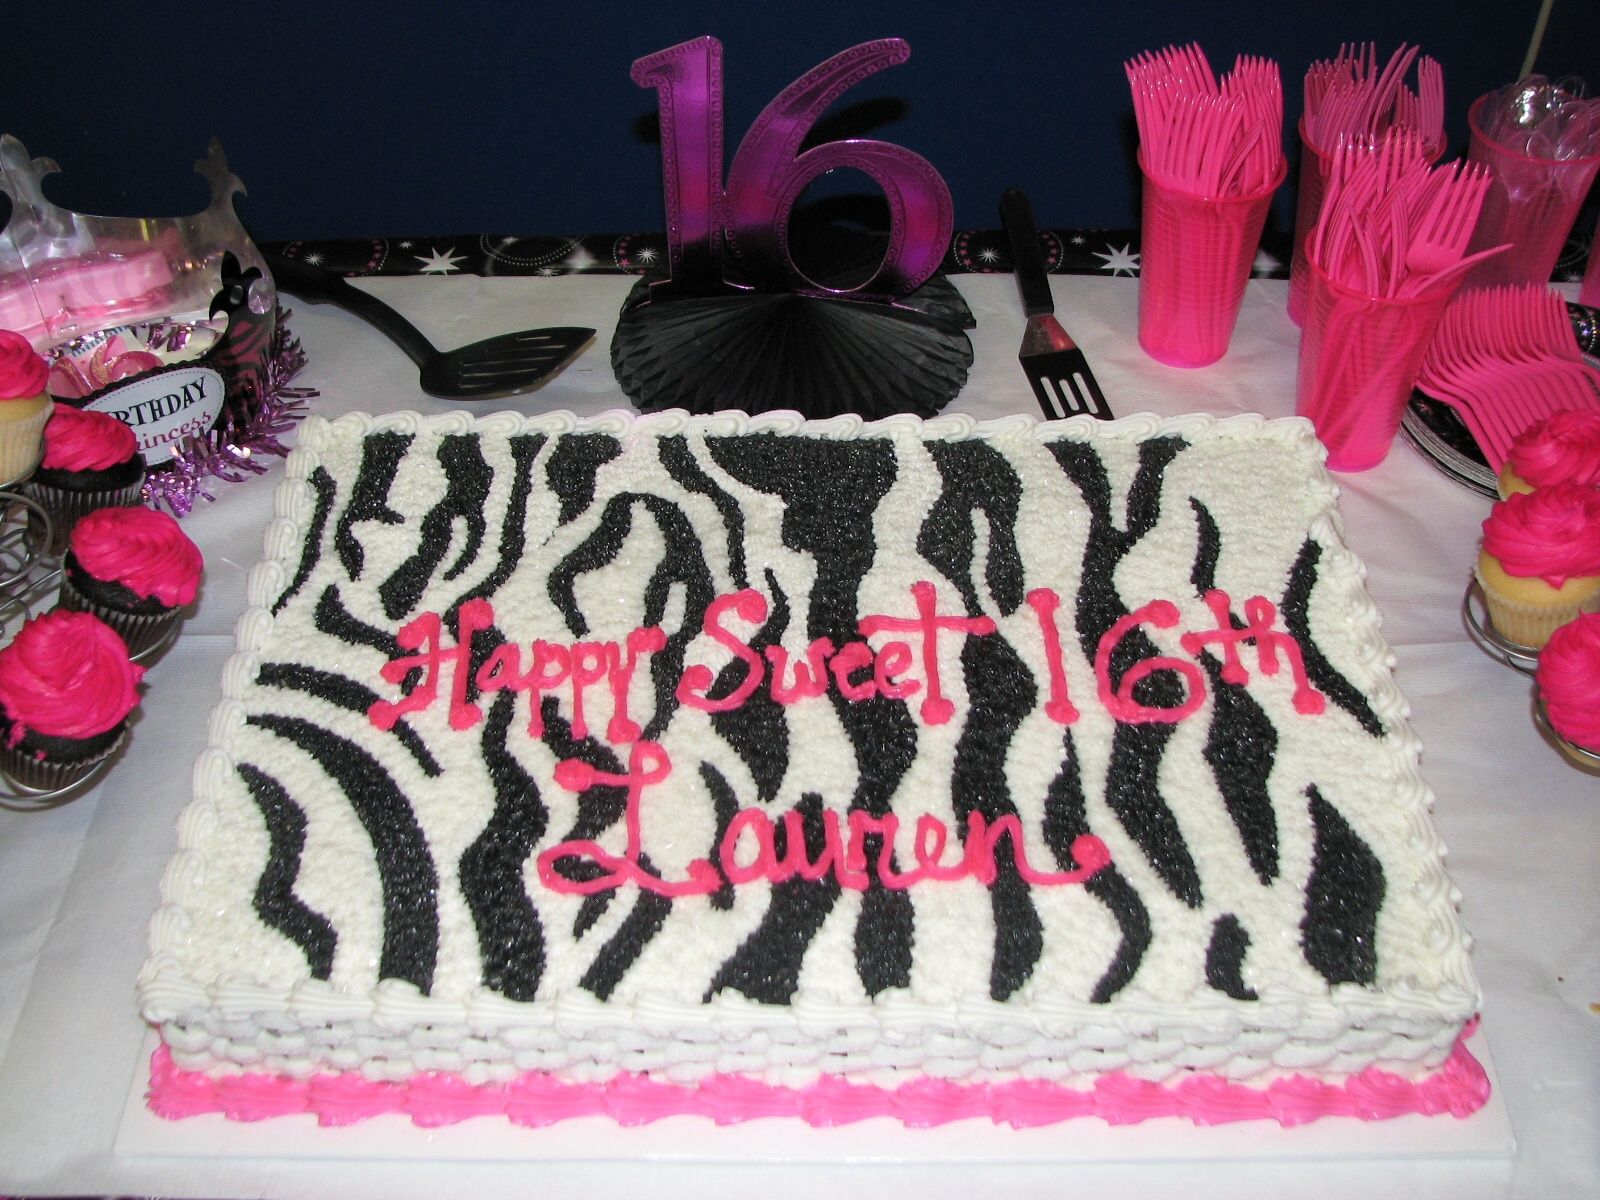 PinkZebraBirthdayCake Birthday Cake with Zebra and Hot Pink